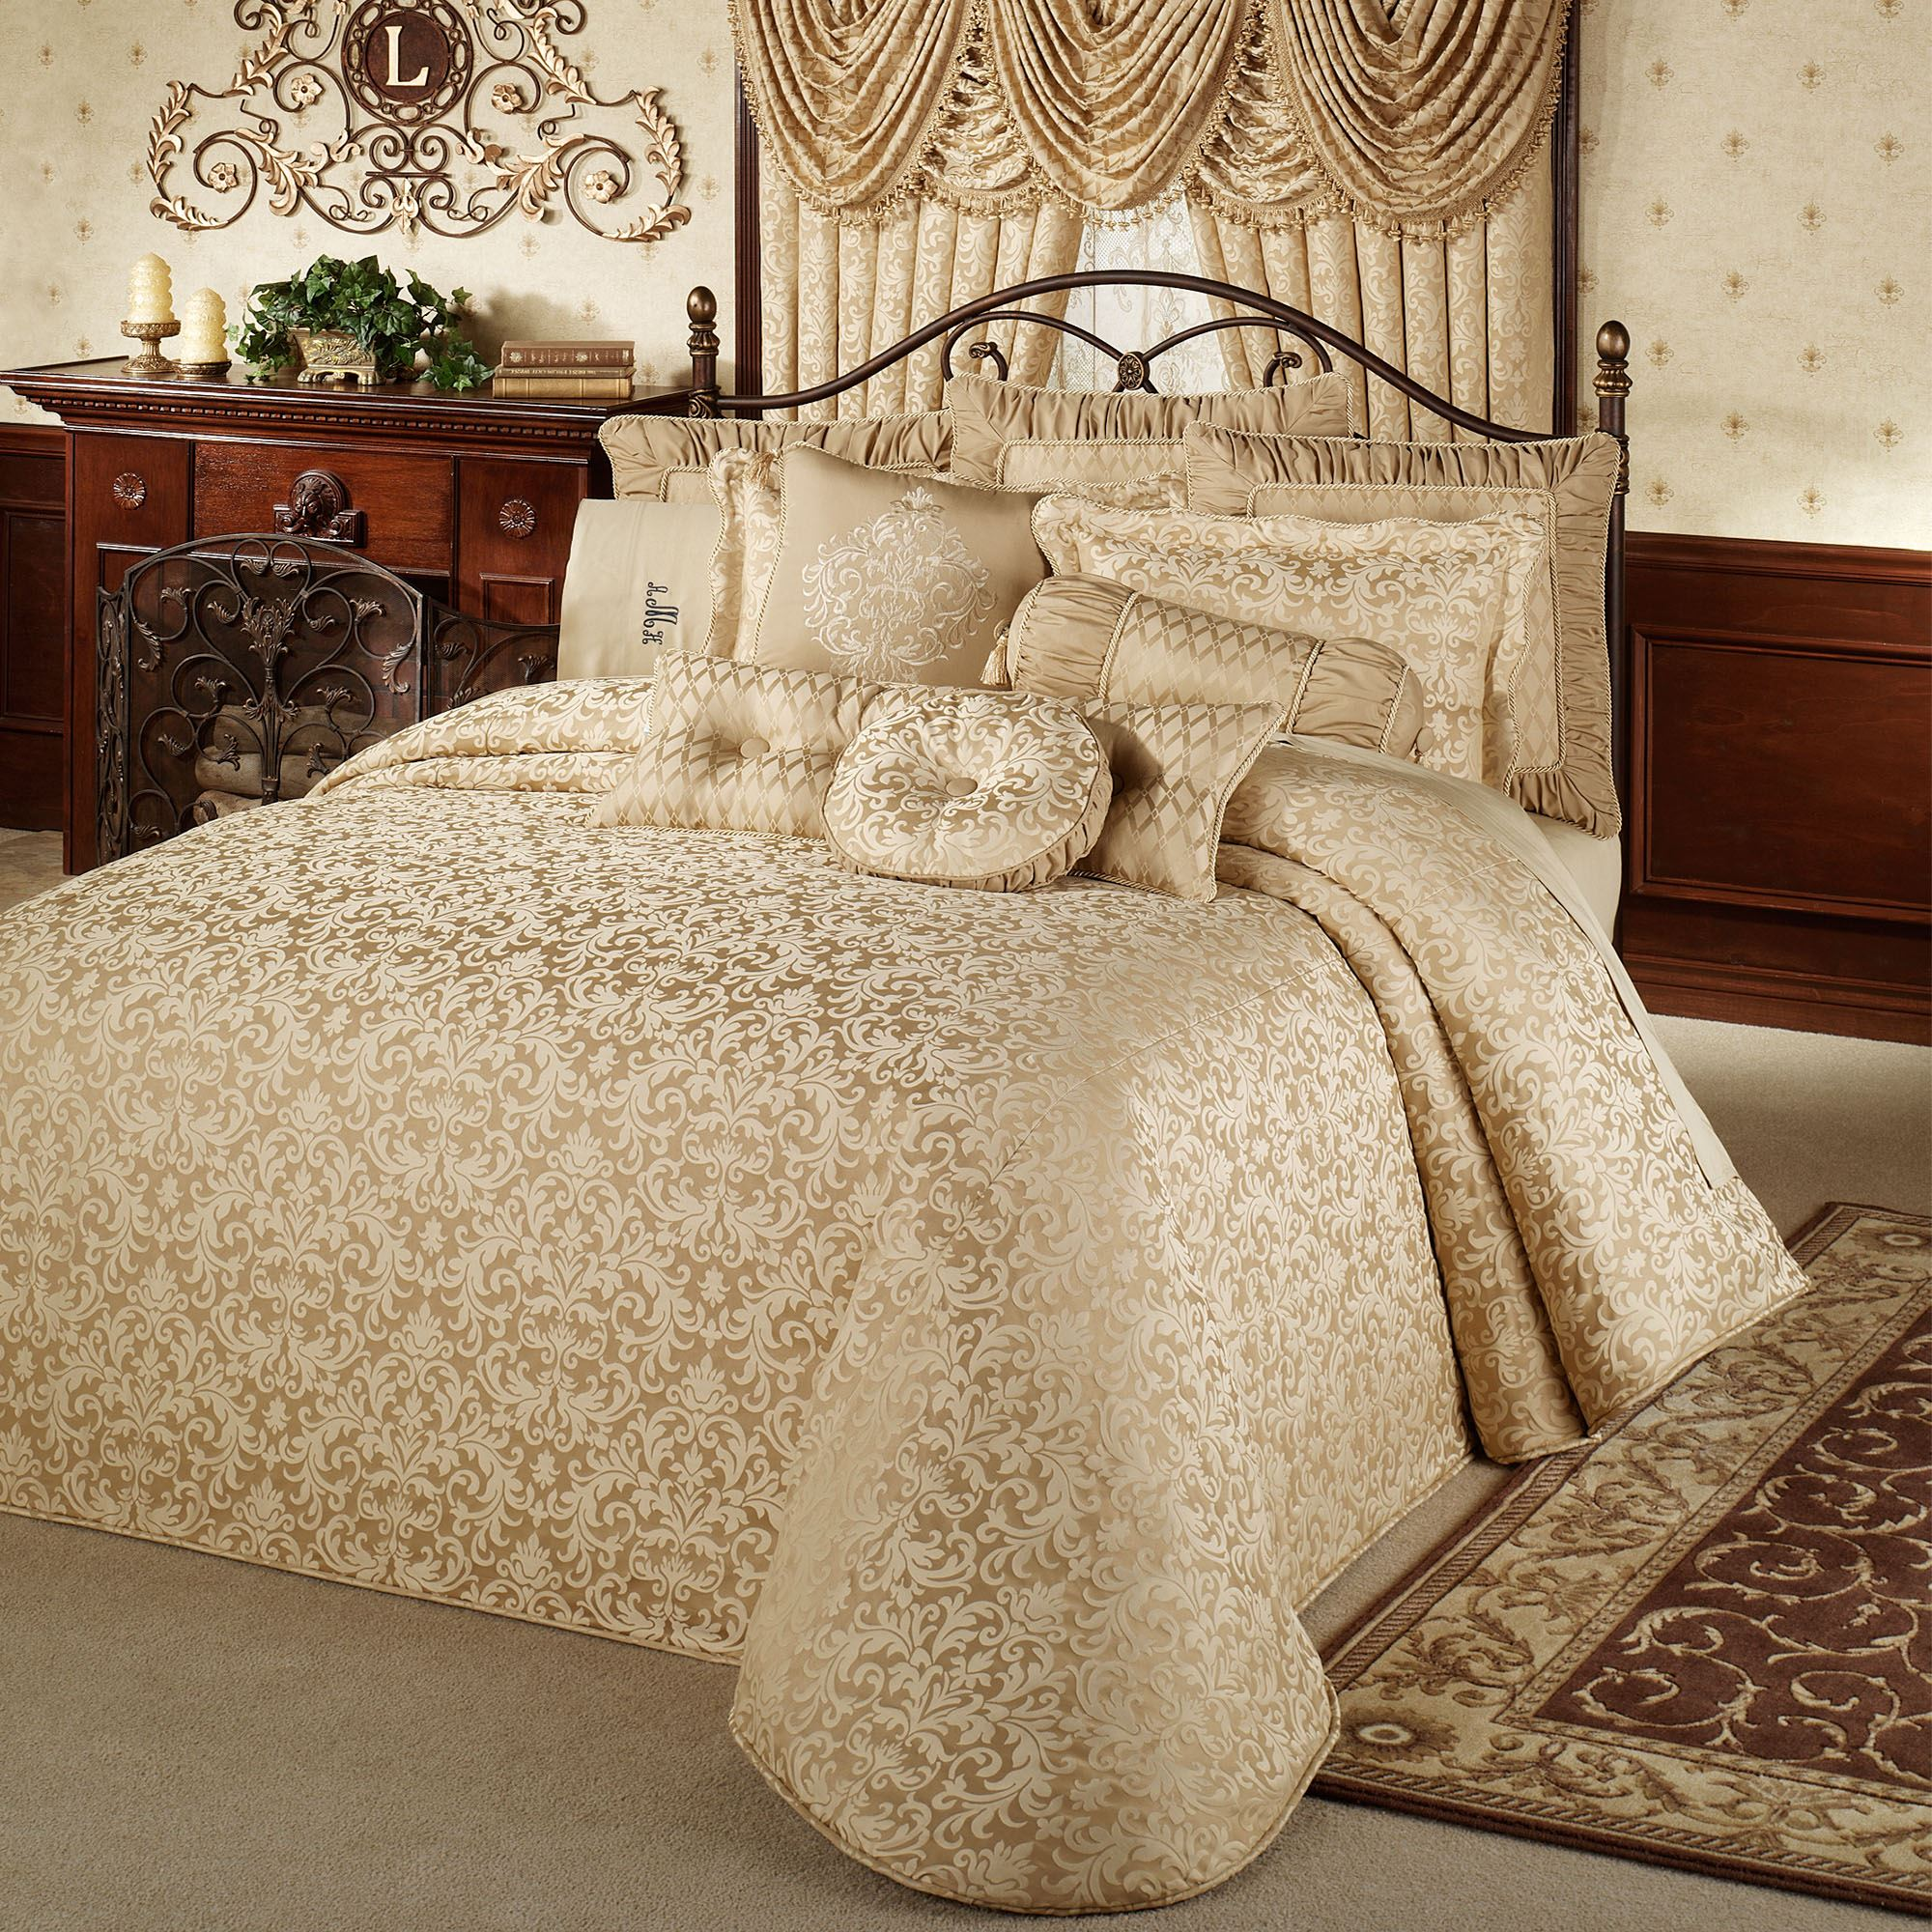 Garden Decor Newcastle: Newcastle Damask Grande Bedspread Bedding